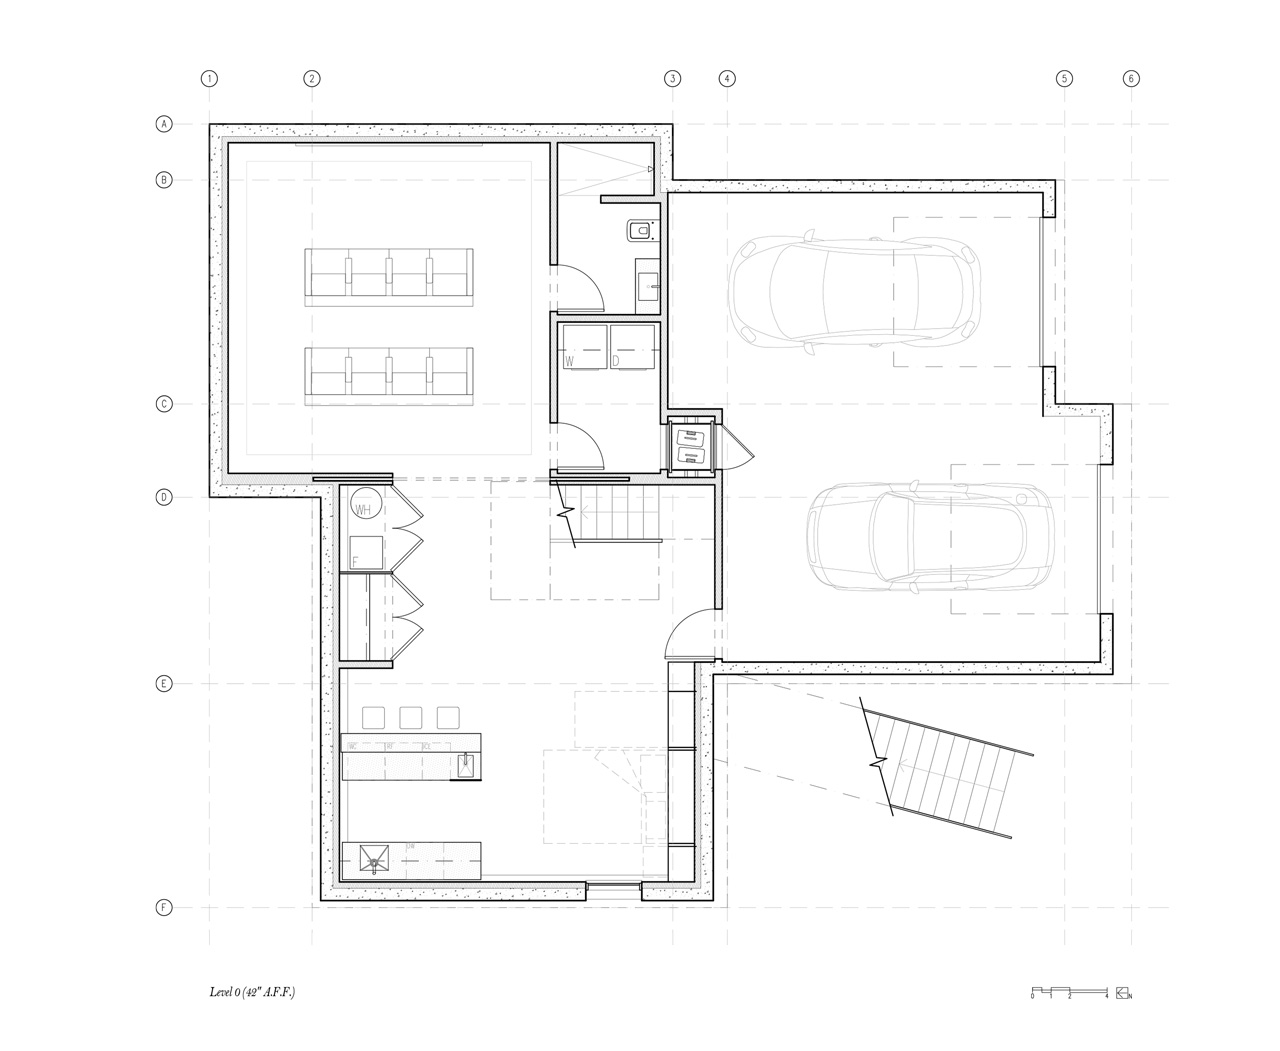 steven-christensen_carry-on-house_plan-0_1280.jpg